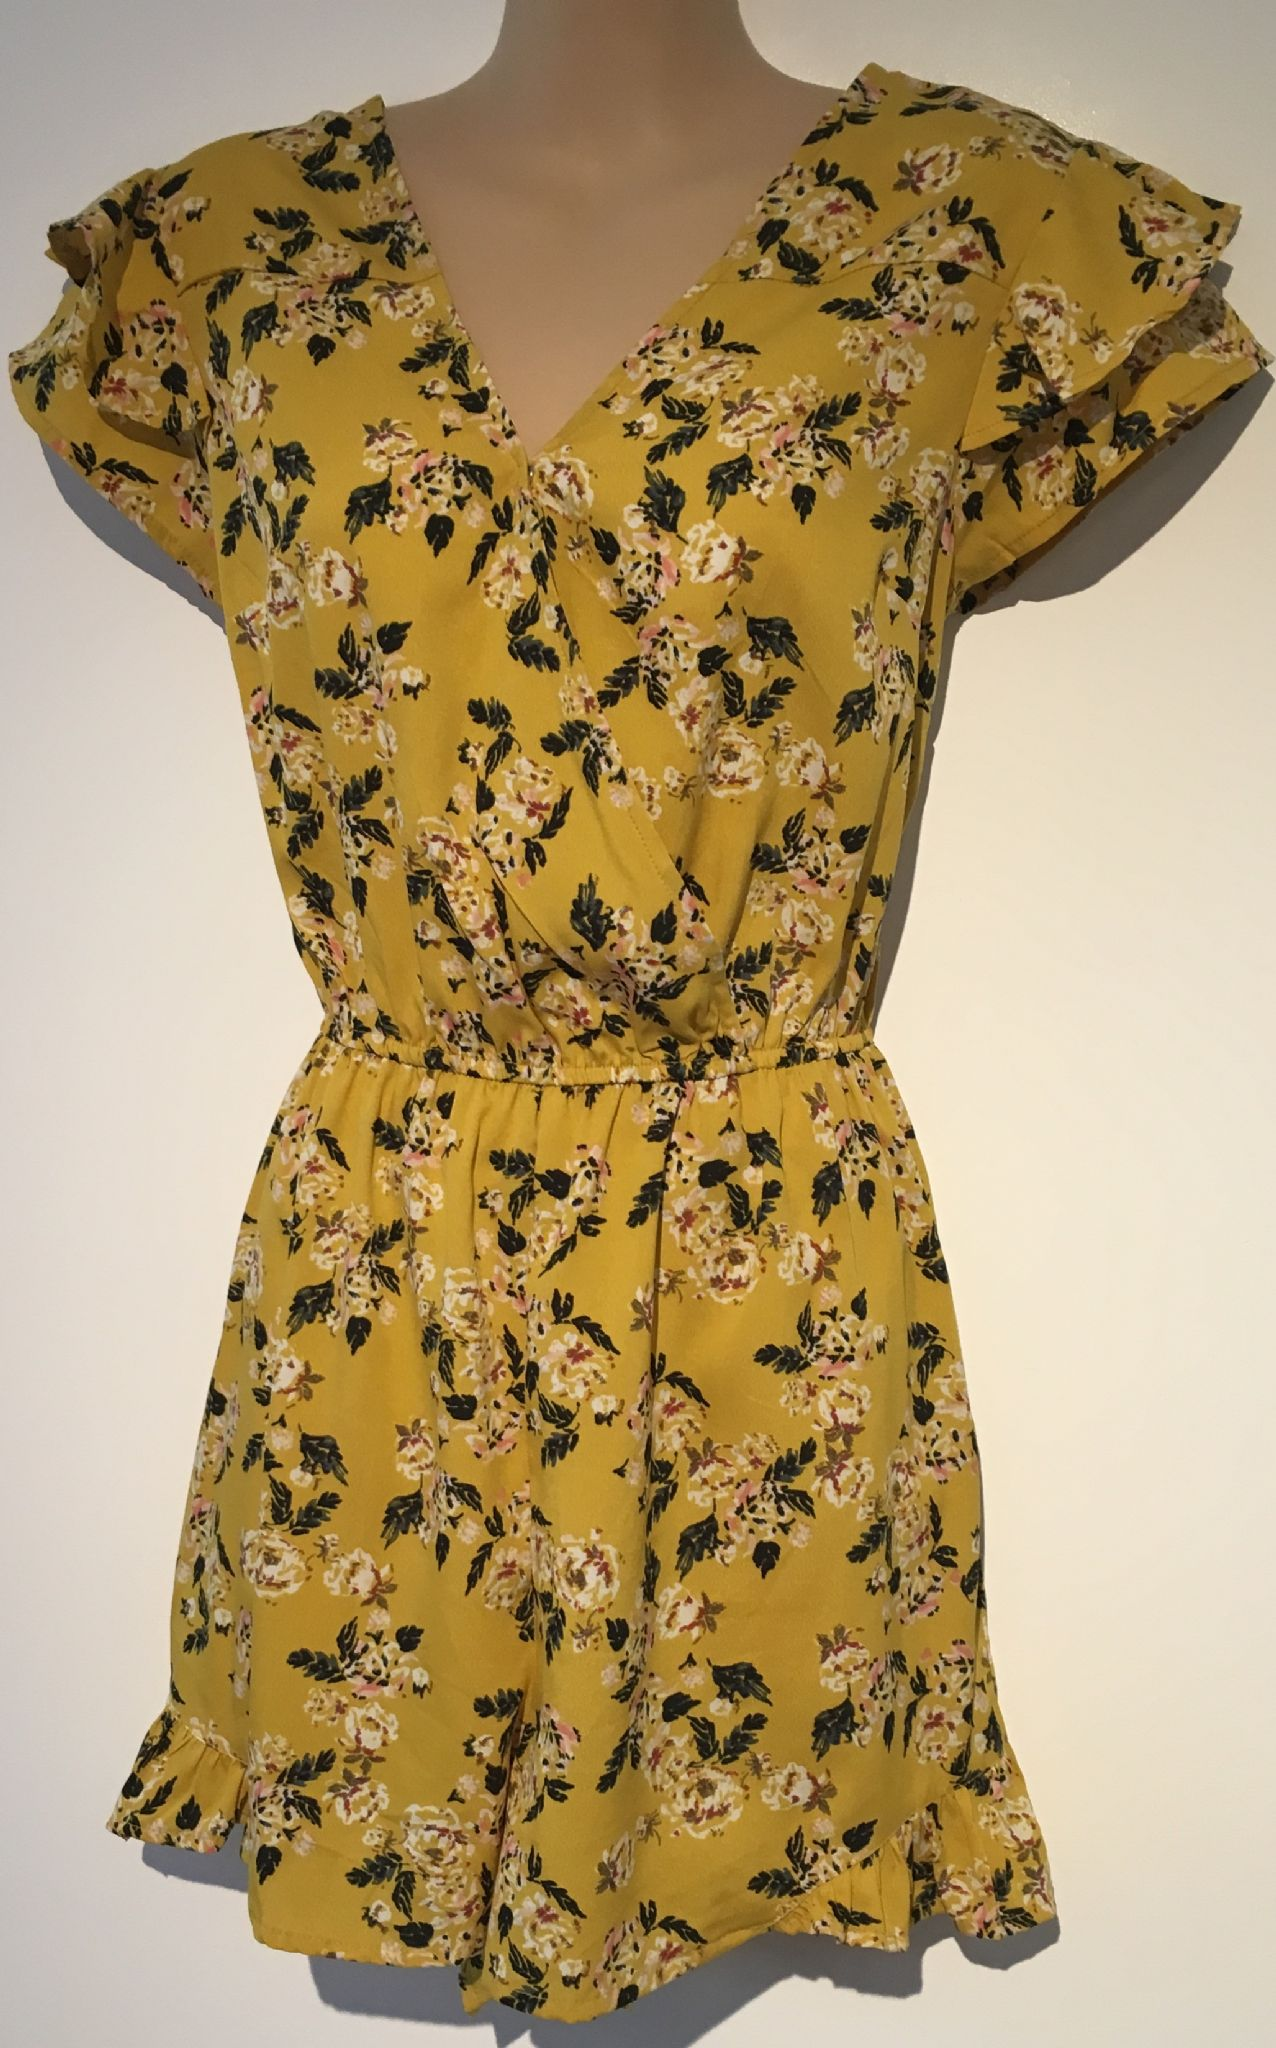 speical offer outlet store sale luxury aesthetic PRIMARK YELLOW FLORAL CROSS OVER PLAYSUIT SIZE UK 12